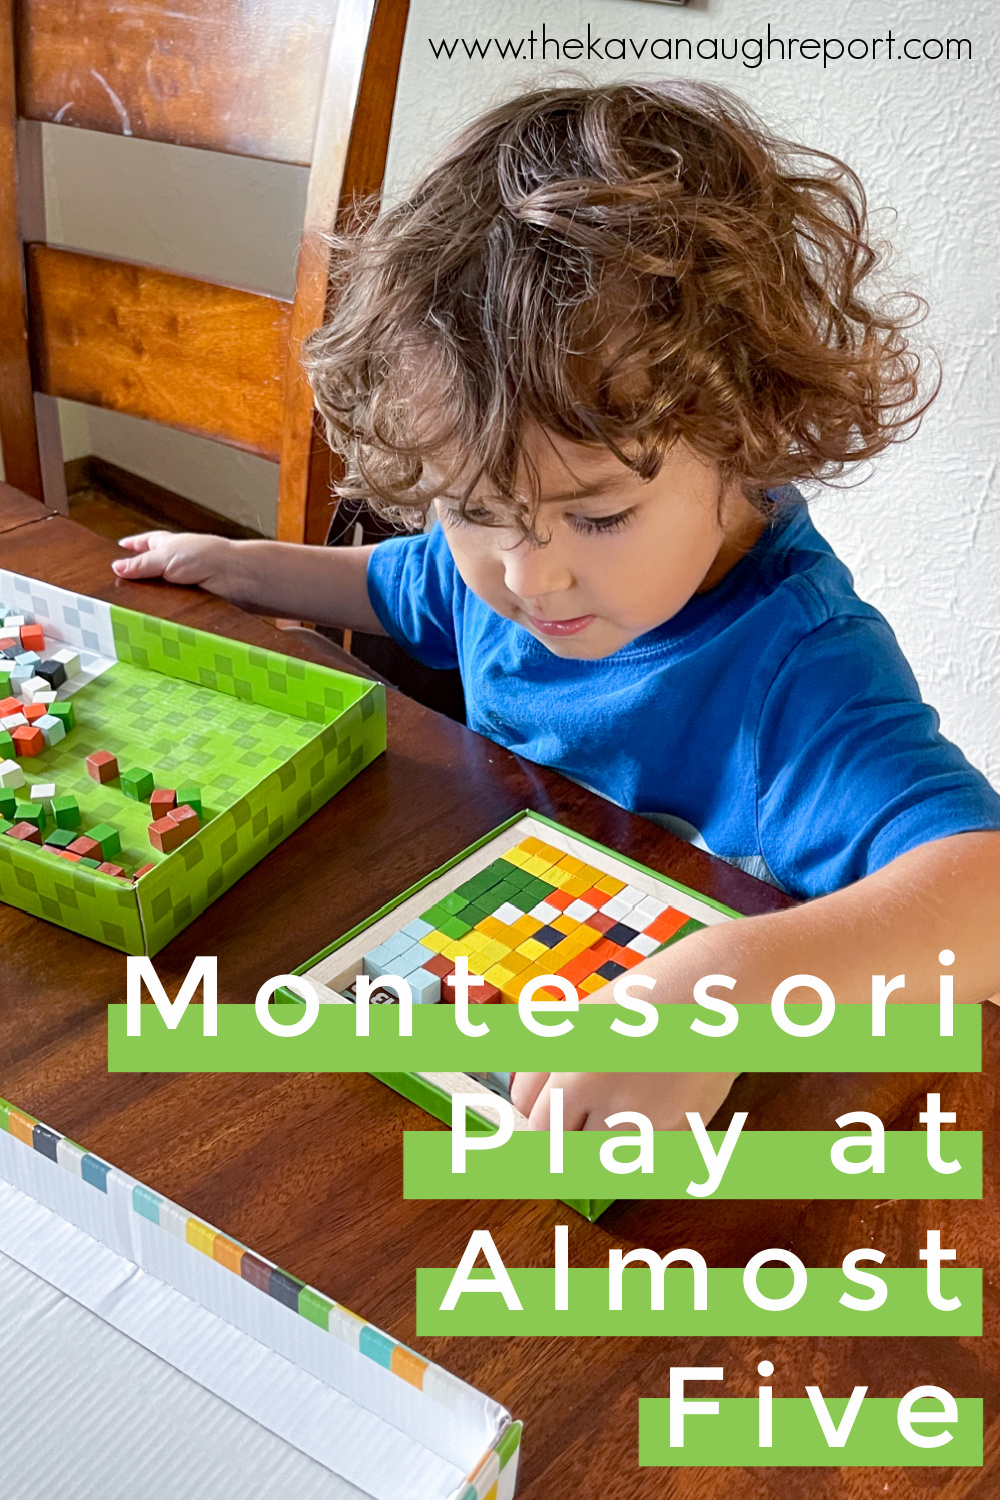 Montessori friendly toy and activity ideas for older 4-year-olds and almost 5-year-olds including practical life and art.